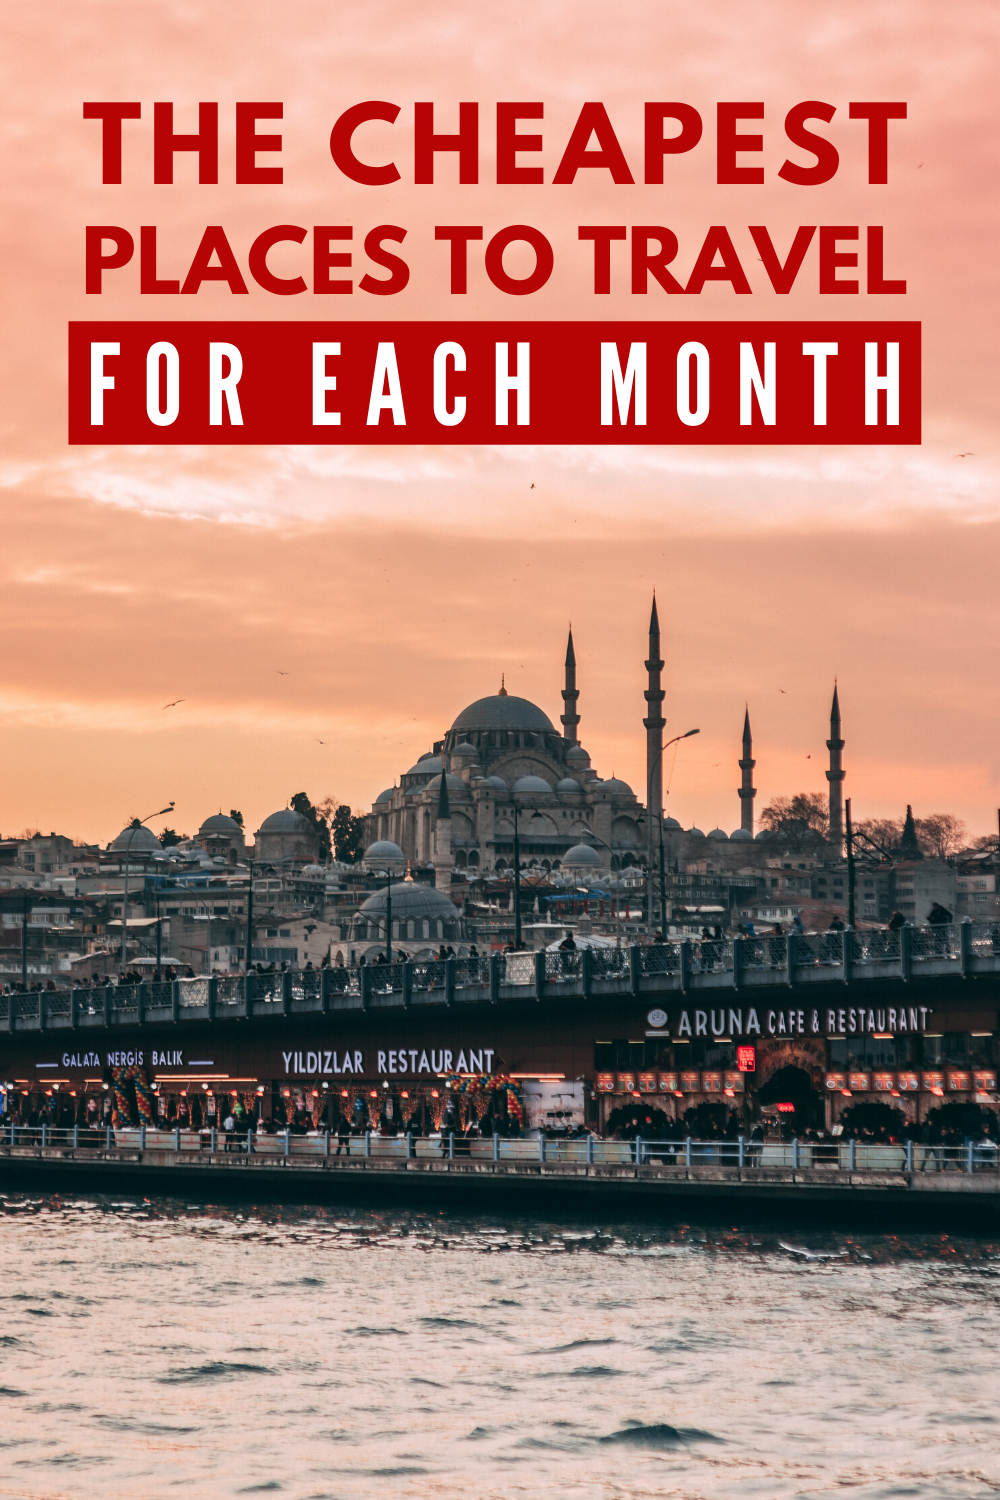 The Cheapest Places To Travel For Each Month Of The Year -  Here, your month-by-month guide for great vacation deals. Budget breakdowns for the cheapest spots  - #AdventureTravel #BudgetTravel #cheapest #month #places #travel #Year